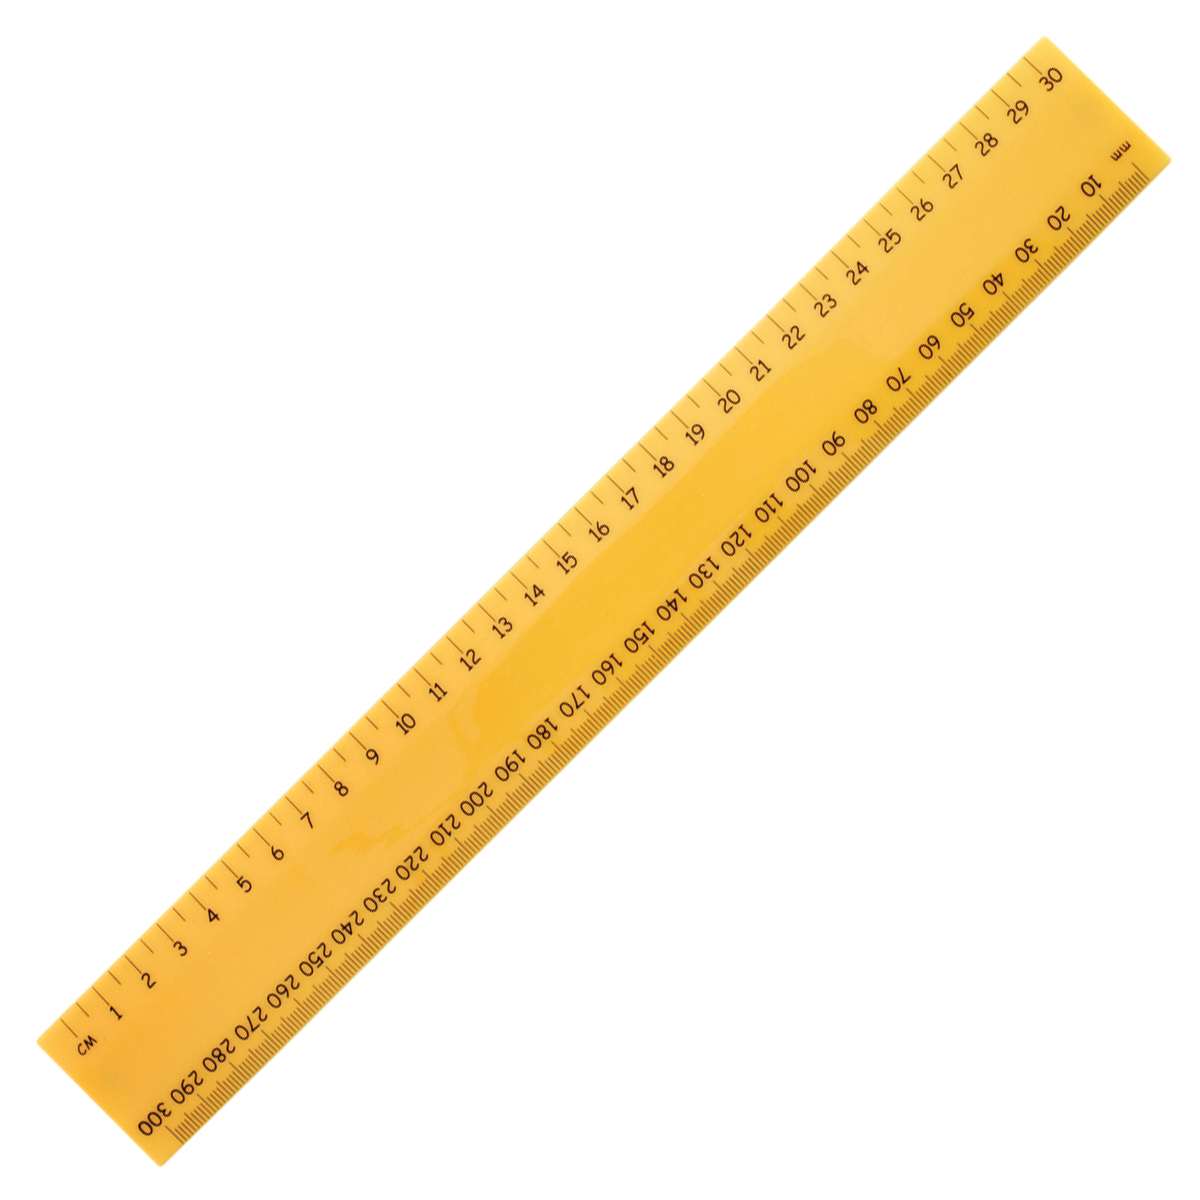 Unit 9: It's a long ruler.